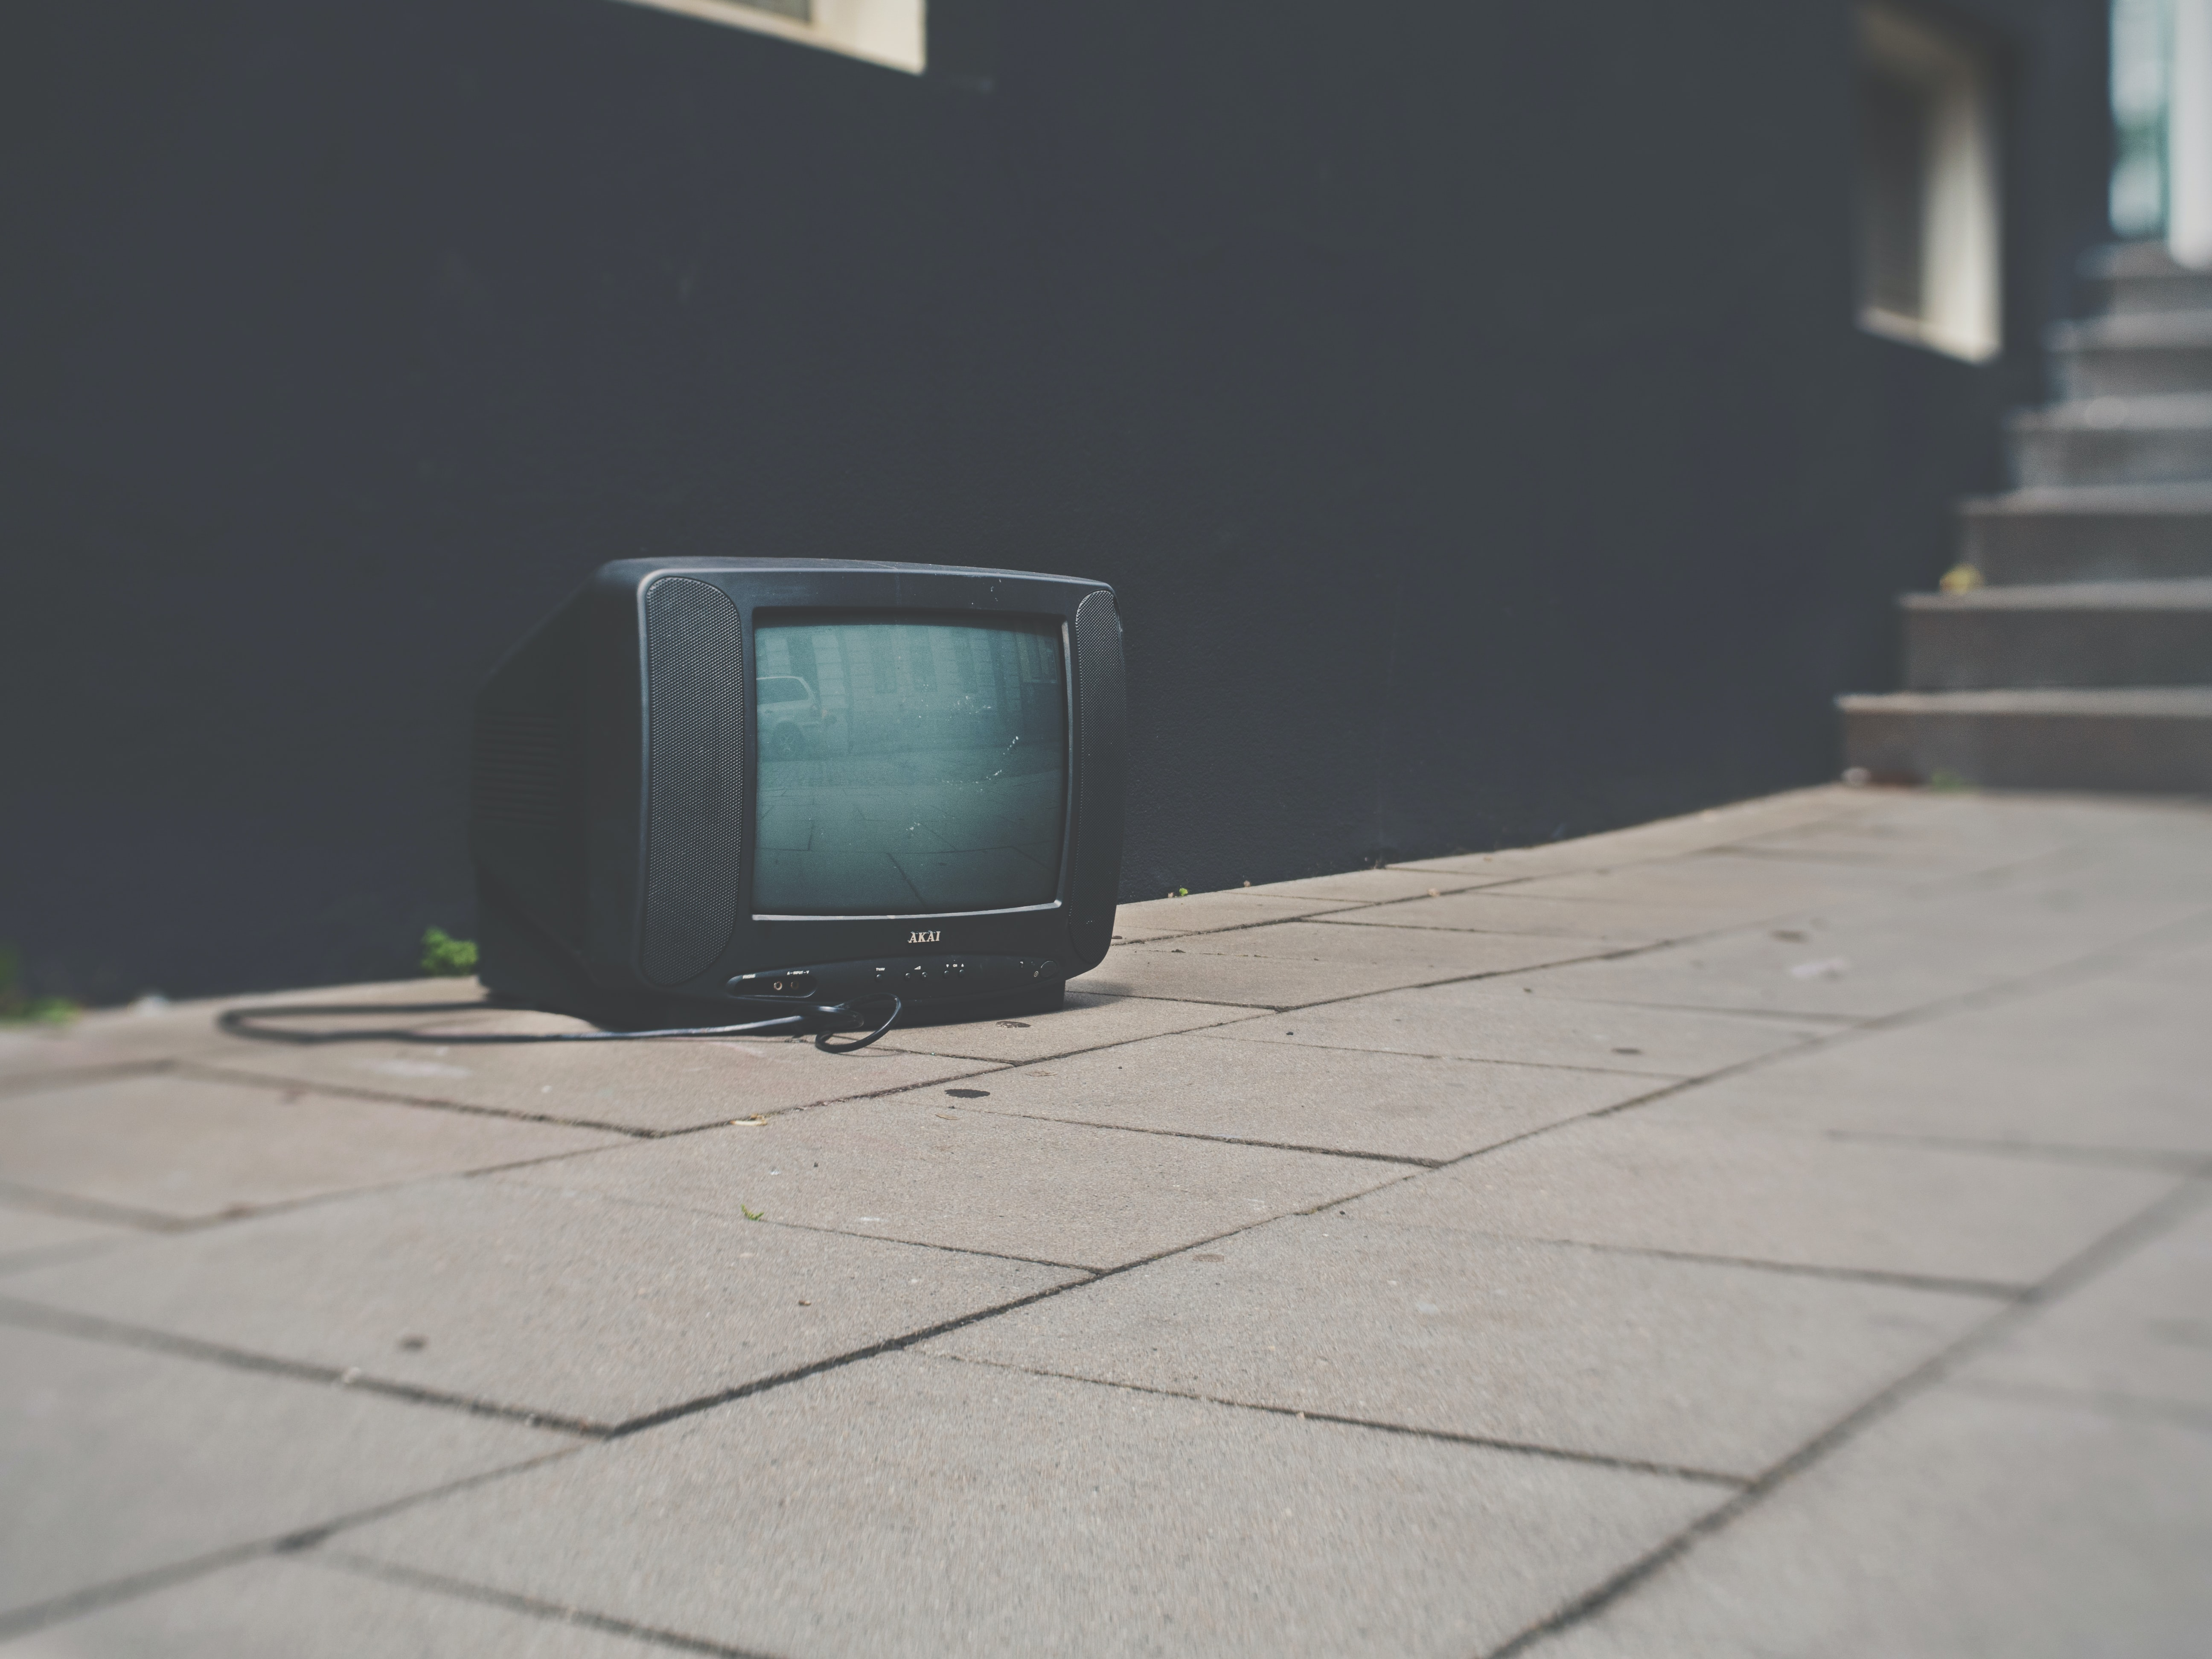 Television with cord sitting on sidewalk outside of black building near stairs